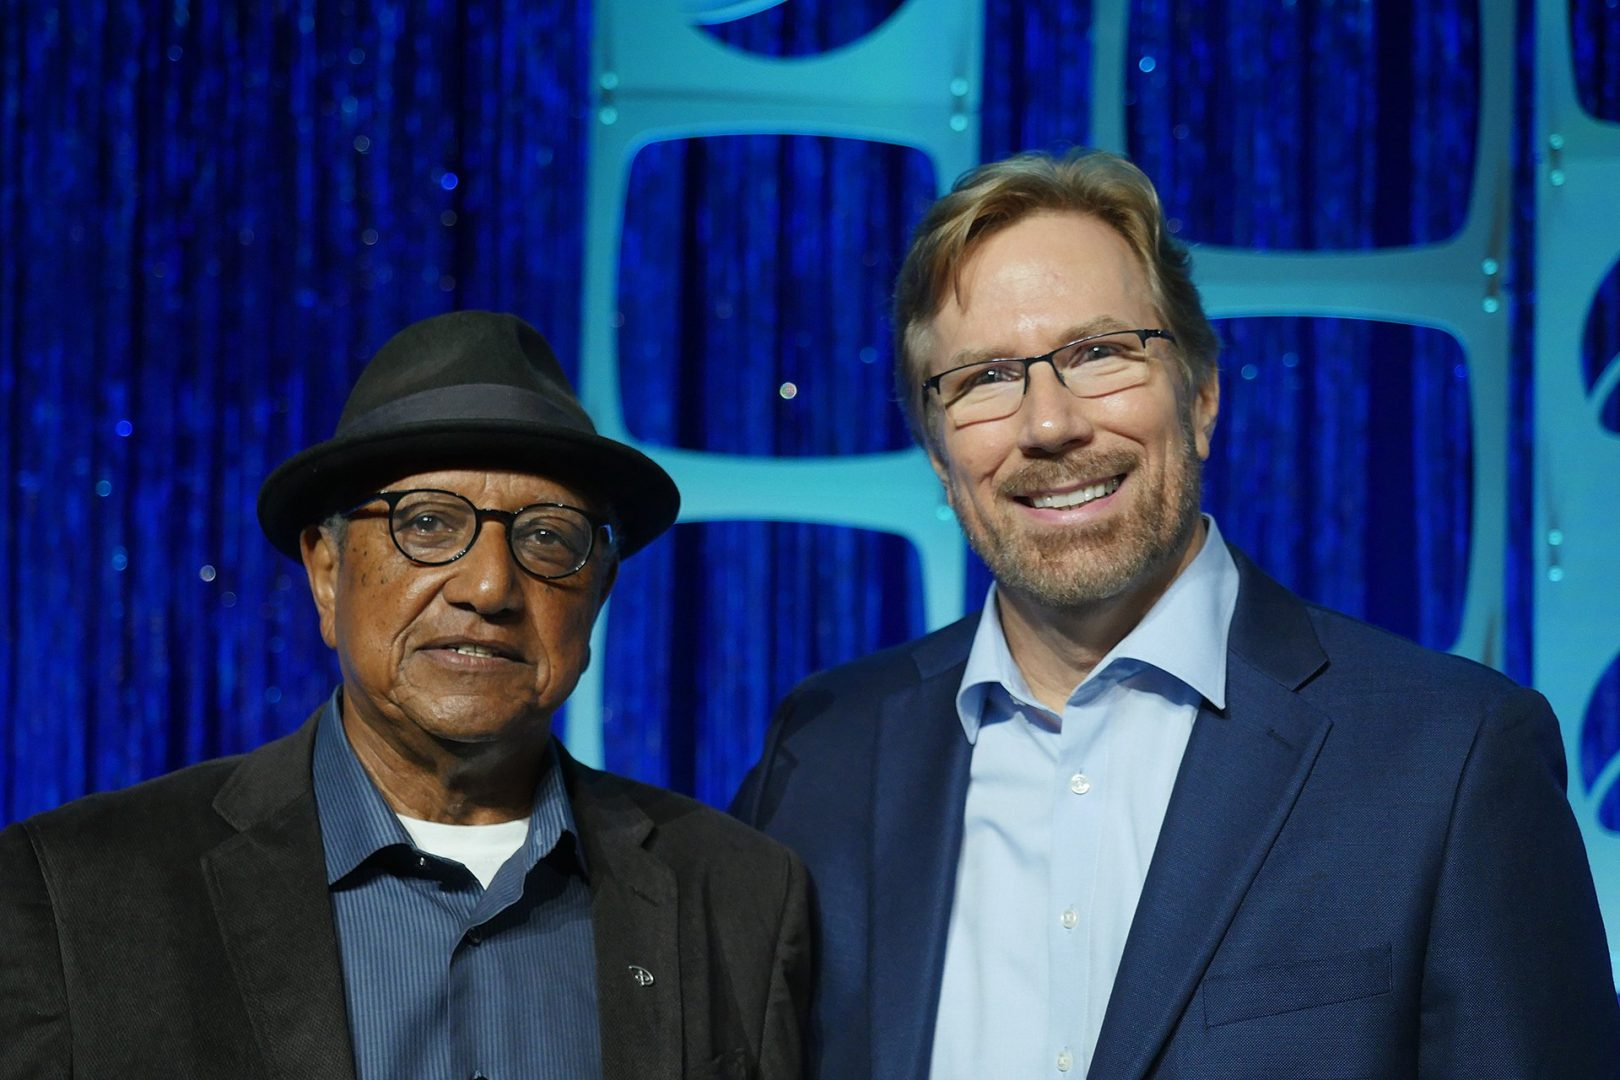 Steve Waskul and Disney Legend Floyd Norman on stage just after the SIGGRAPH 2017 Keynote